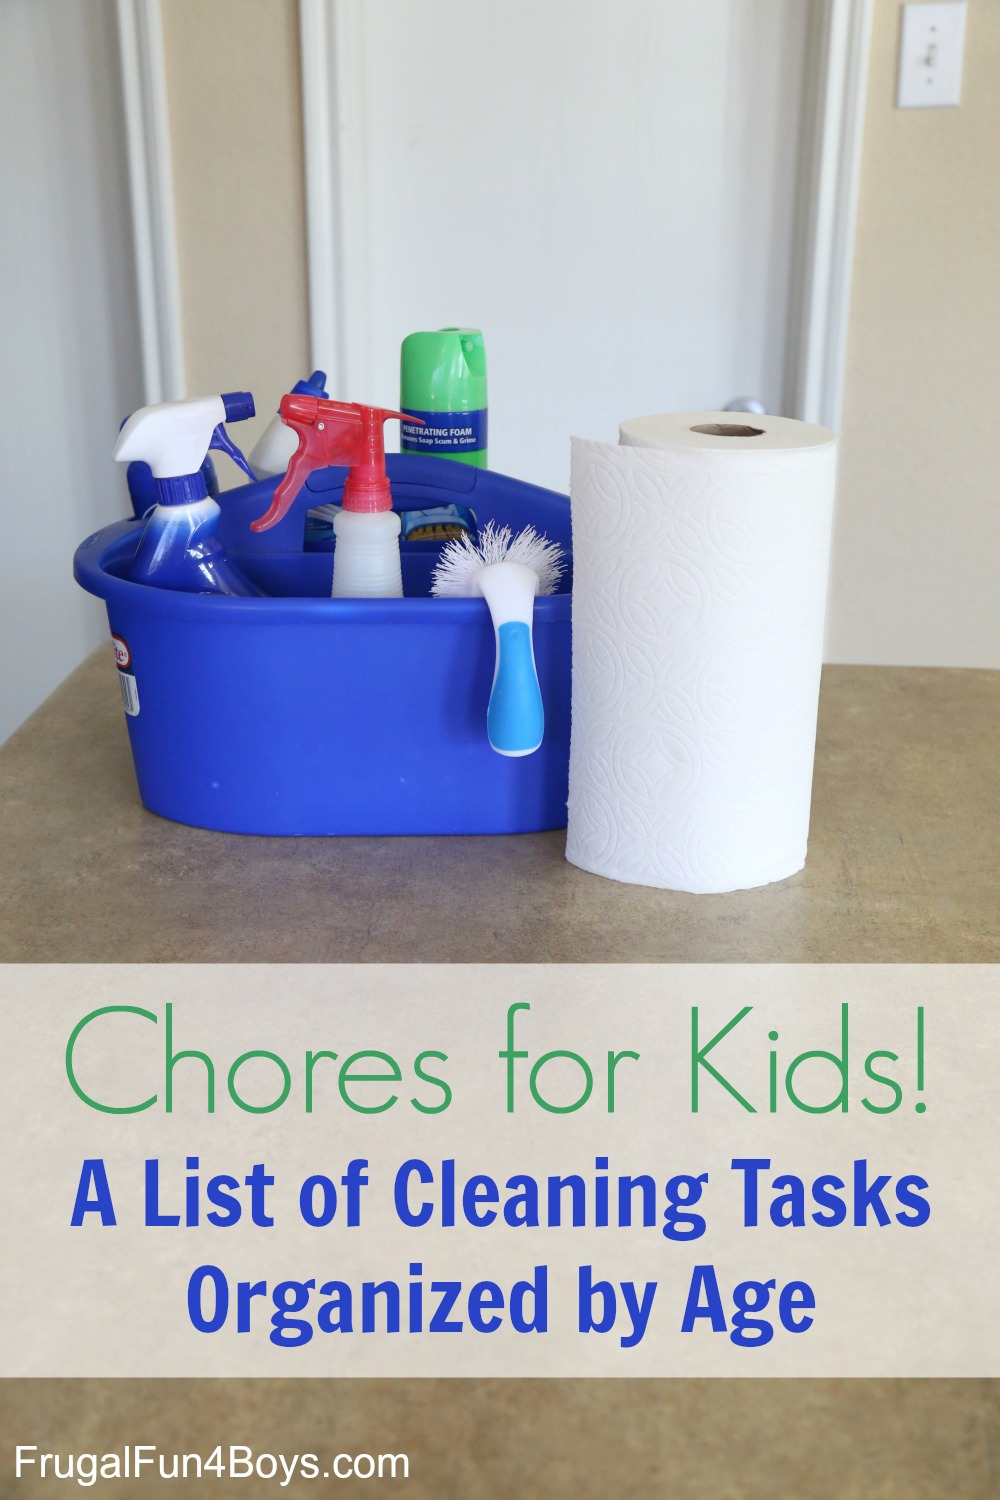 Chores for Kids! A List of Cleaning Tasks Organized by Room and Age